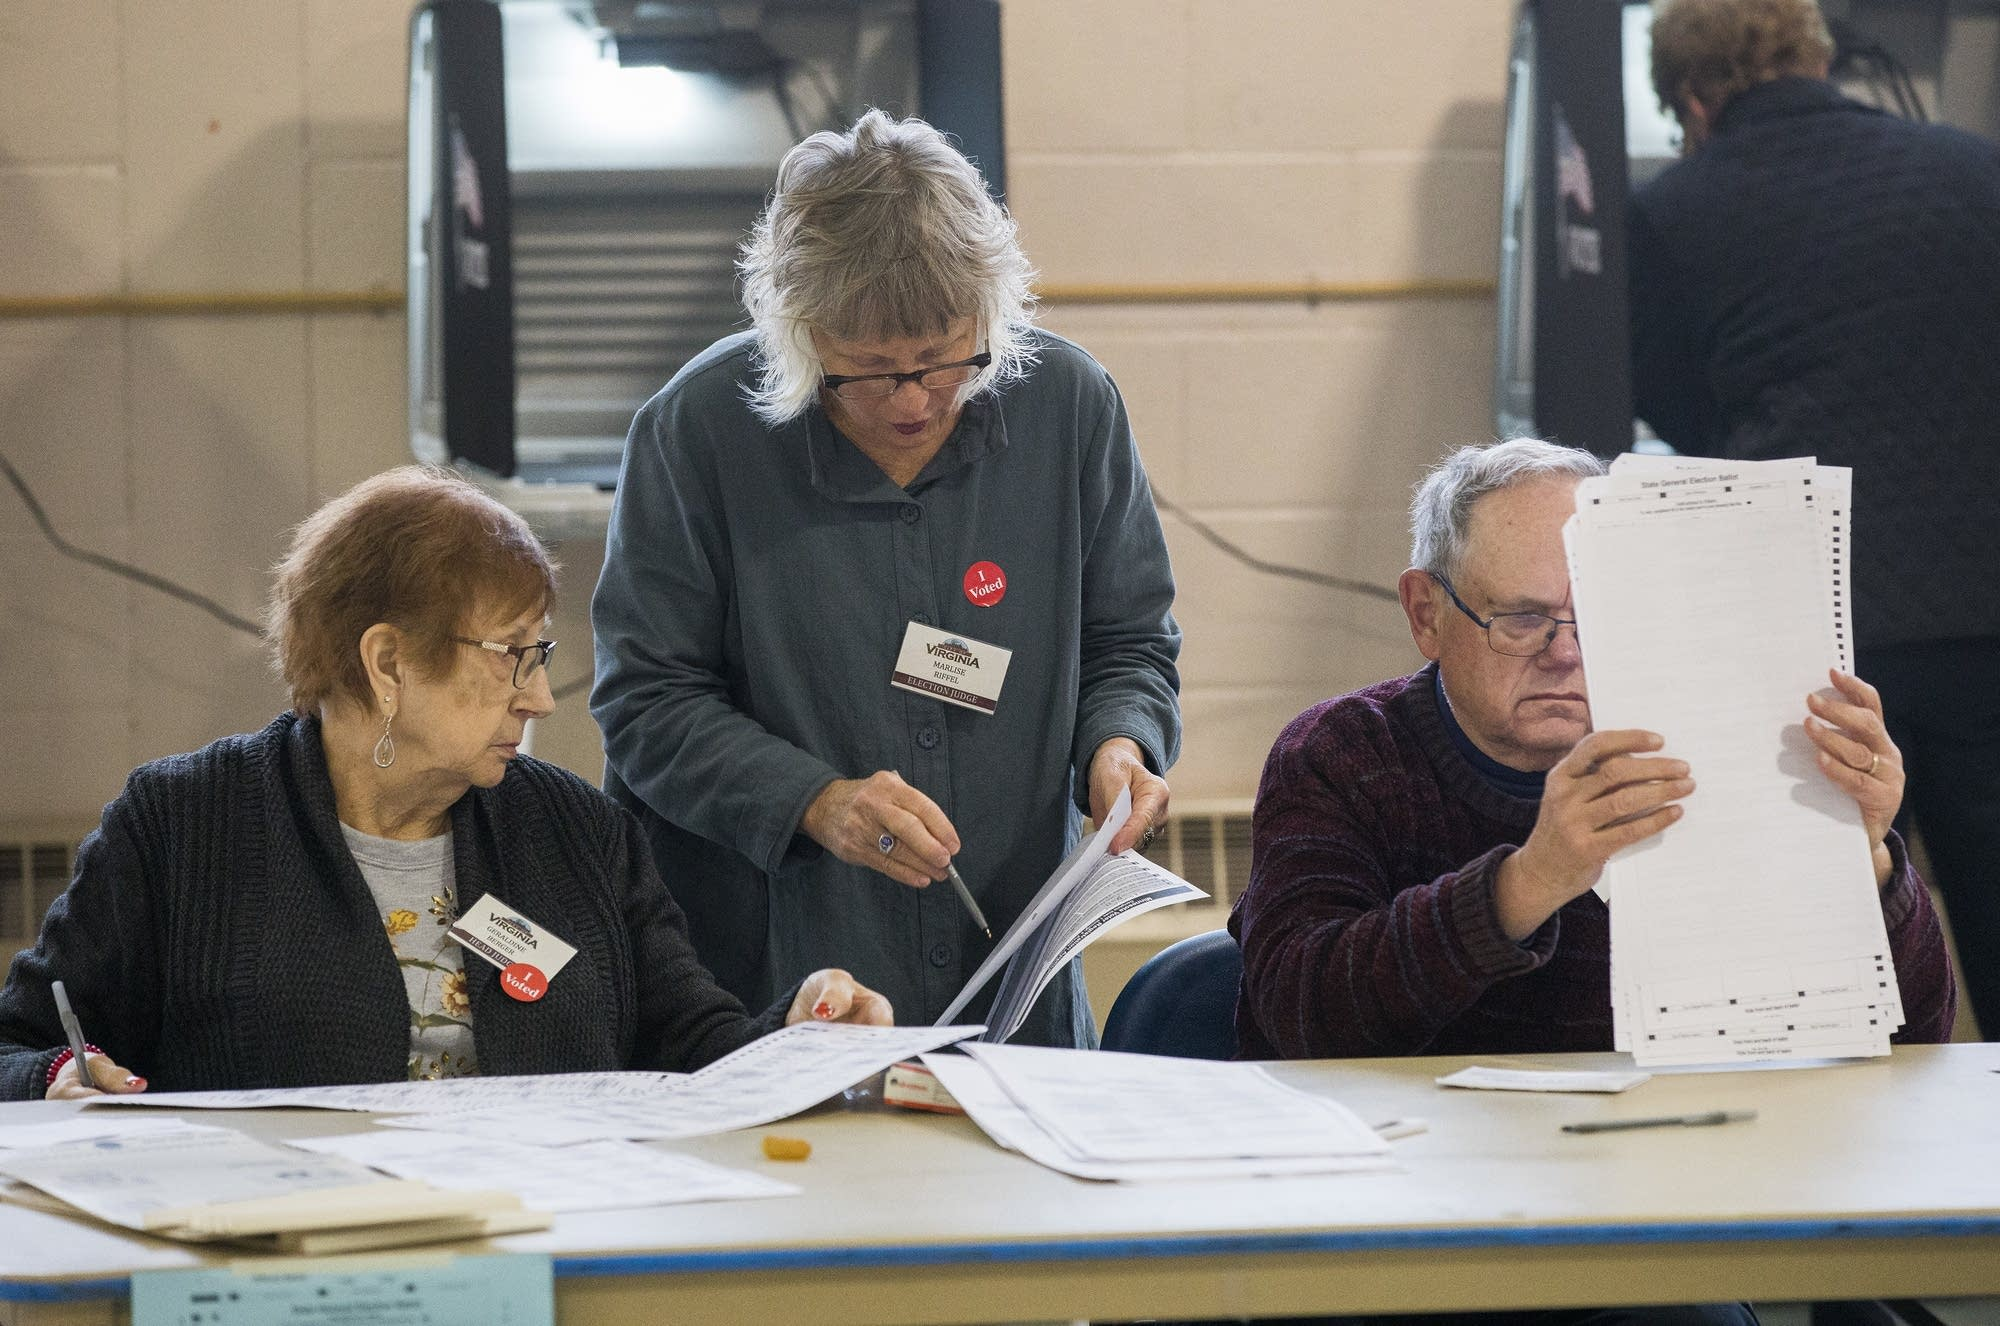 Election judges at the Miners Memorial Building in Virginia, Minn.